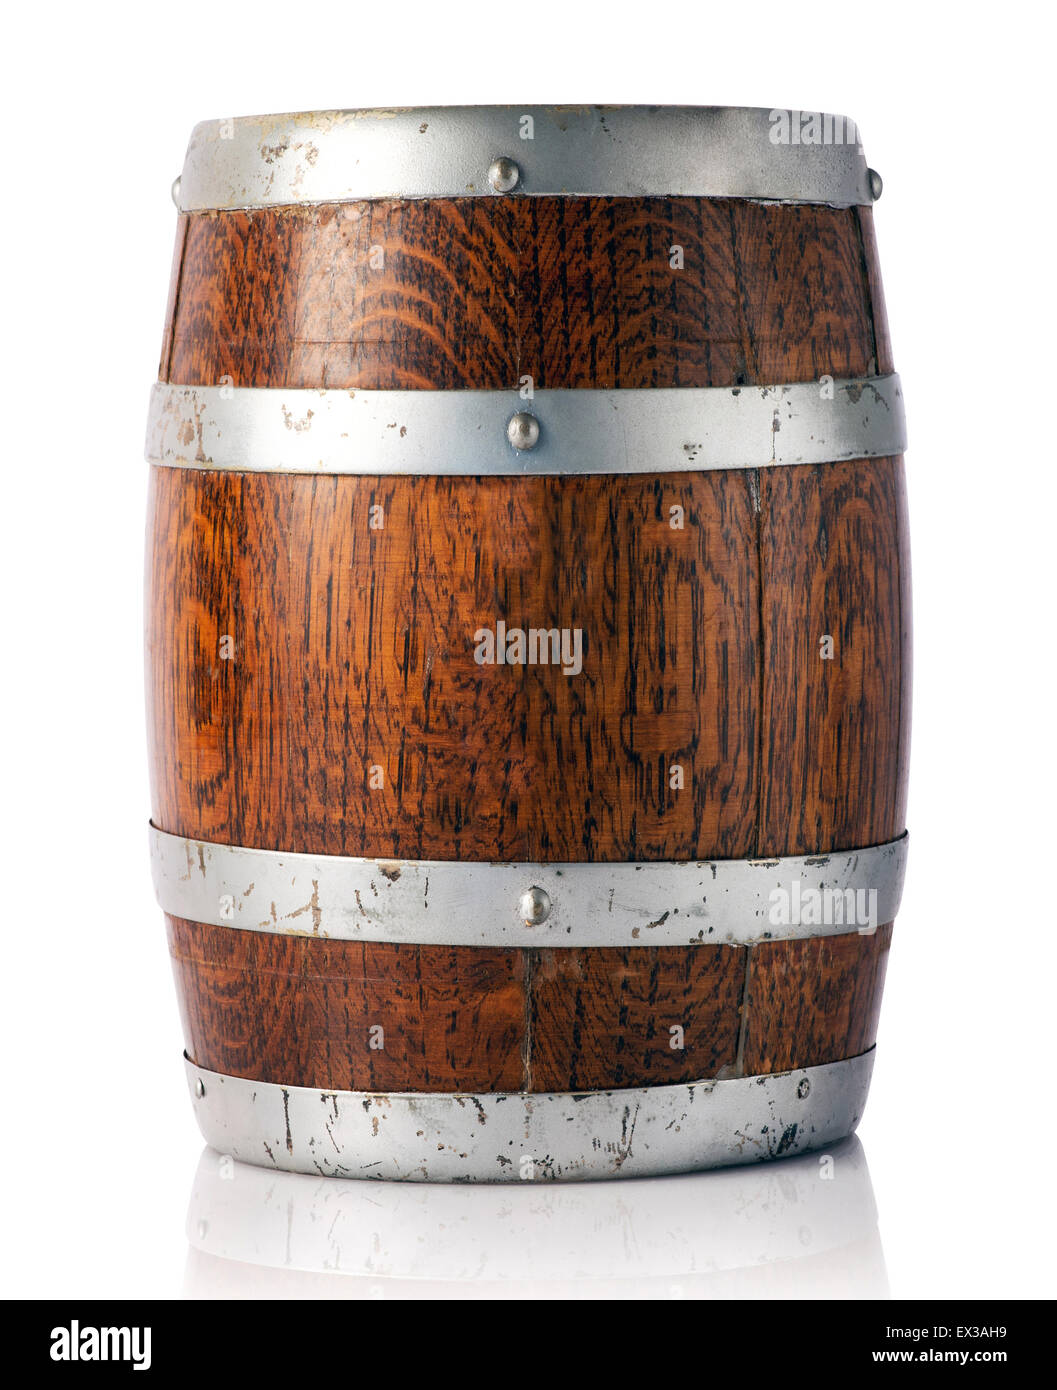 Coopered wooden oak barrel with metal bands - Stock Image